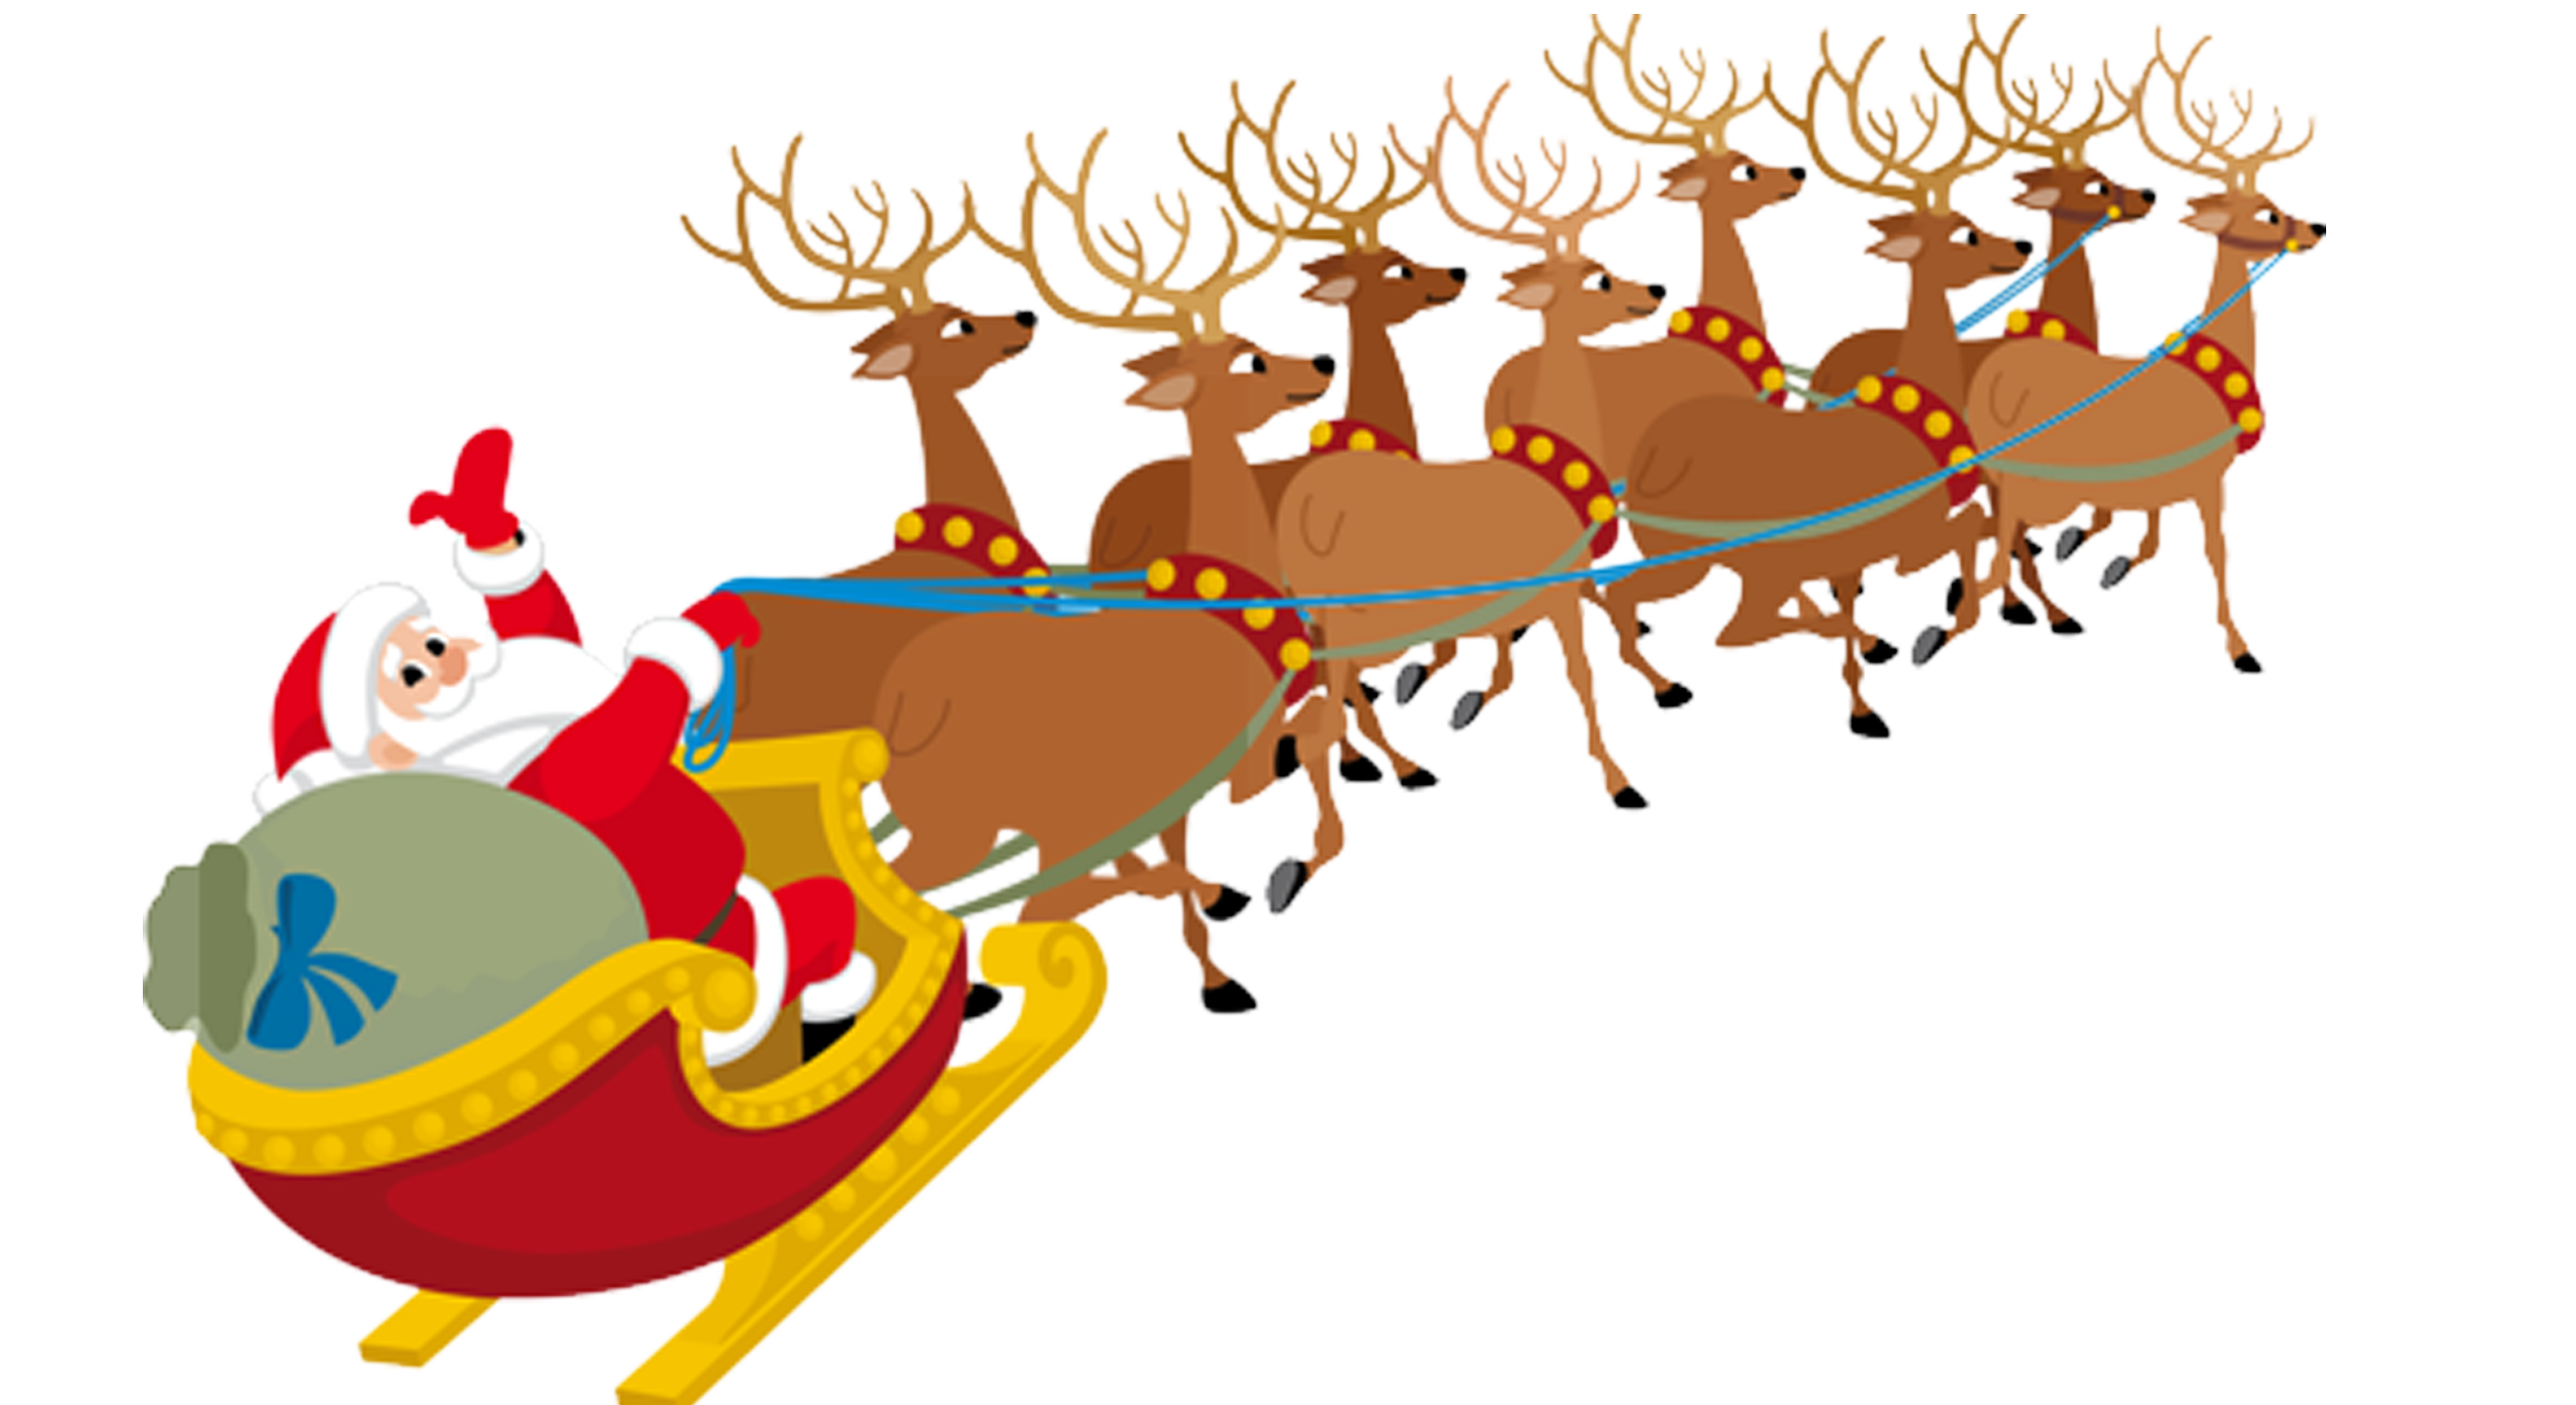 Santa Sleigh Png Pictures Santa Sleigh Clipart Free Download Free Transparent Png Logos